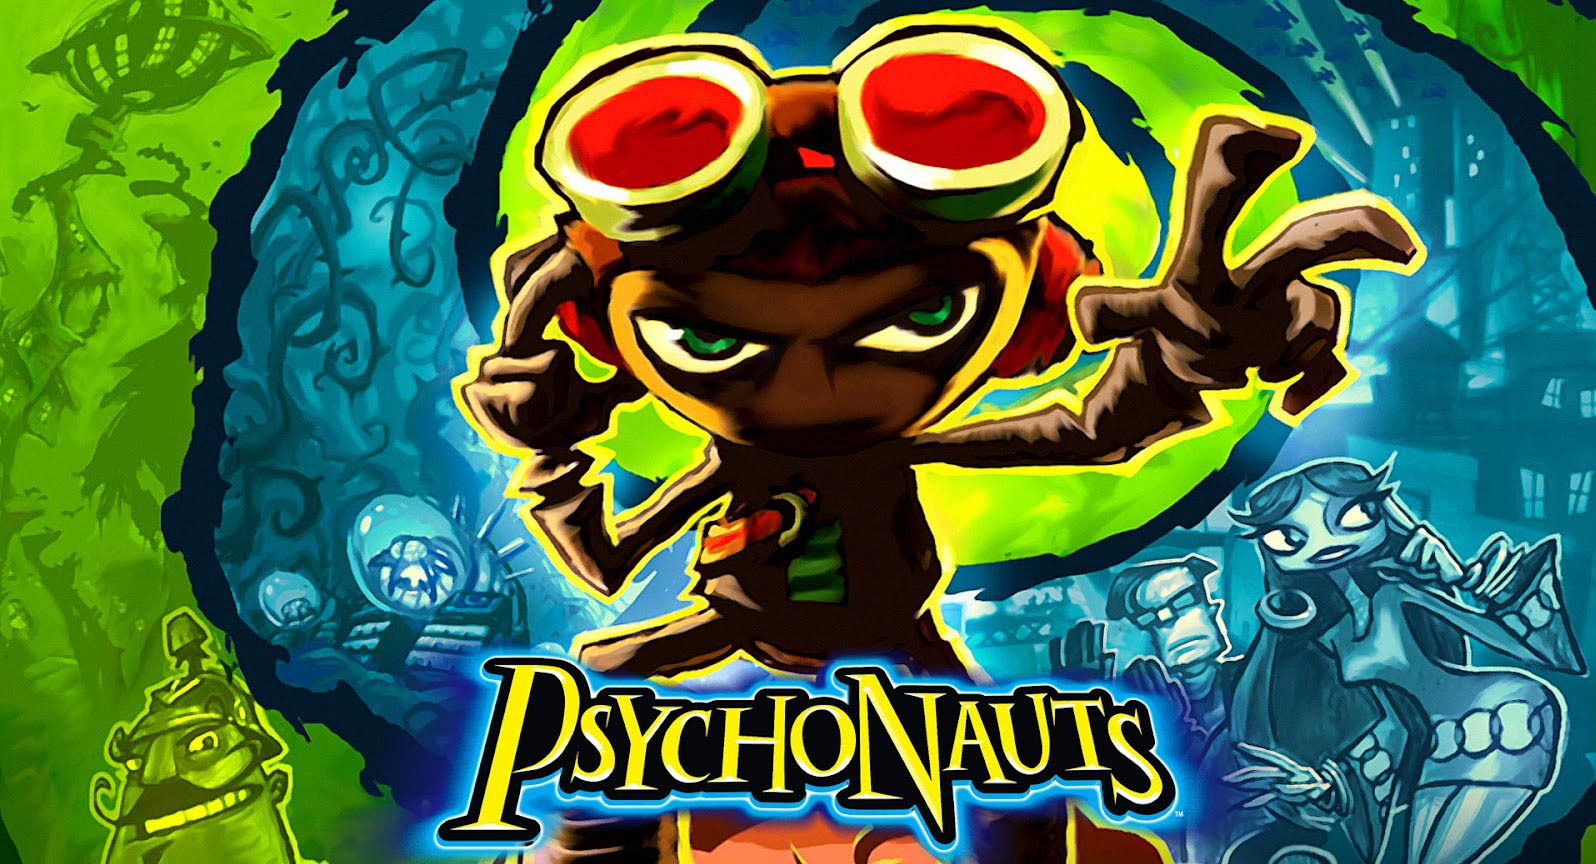 Psychonauts (RU/CIS activation; Steam ROW gift)